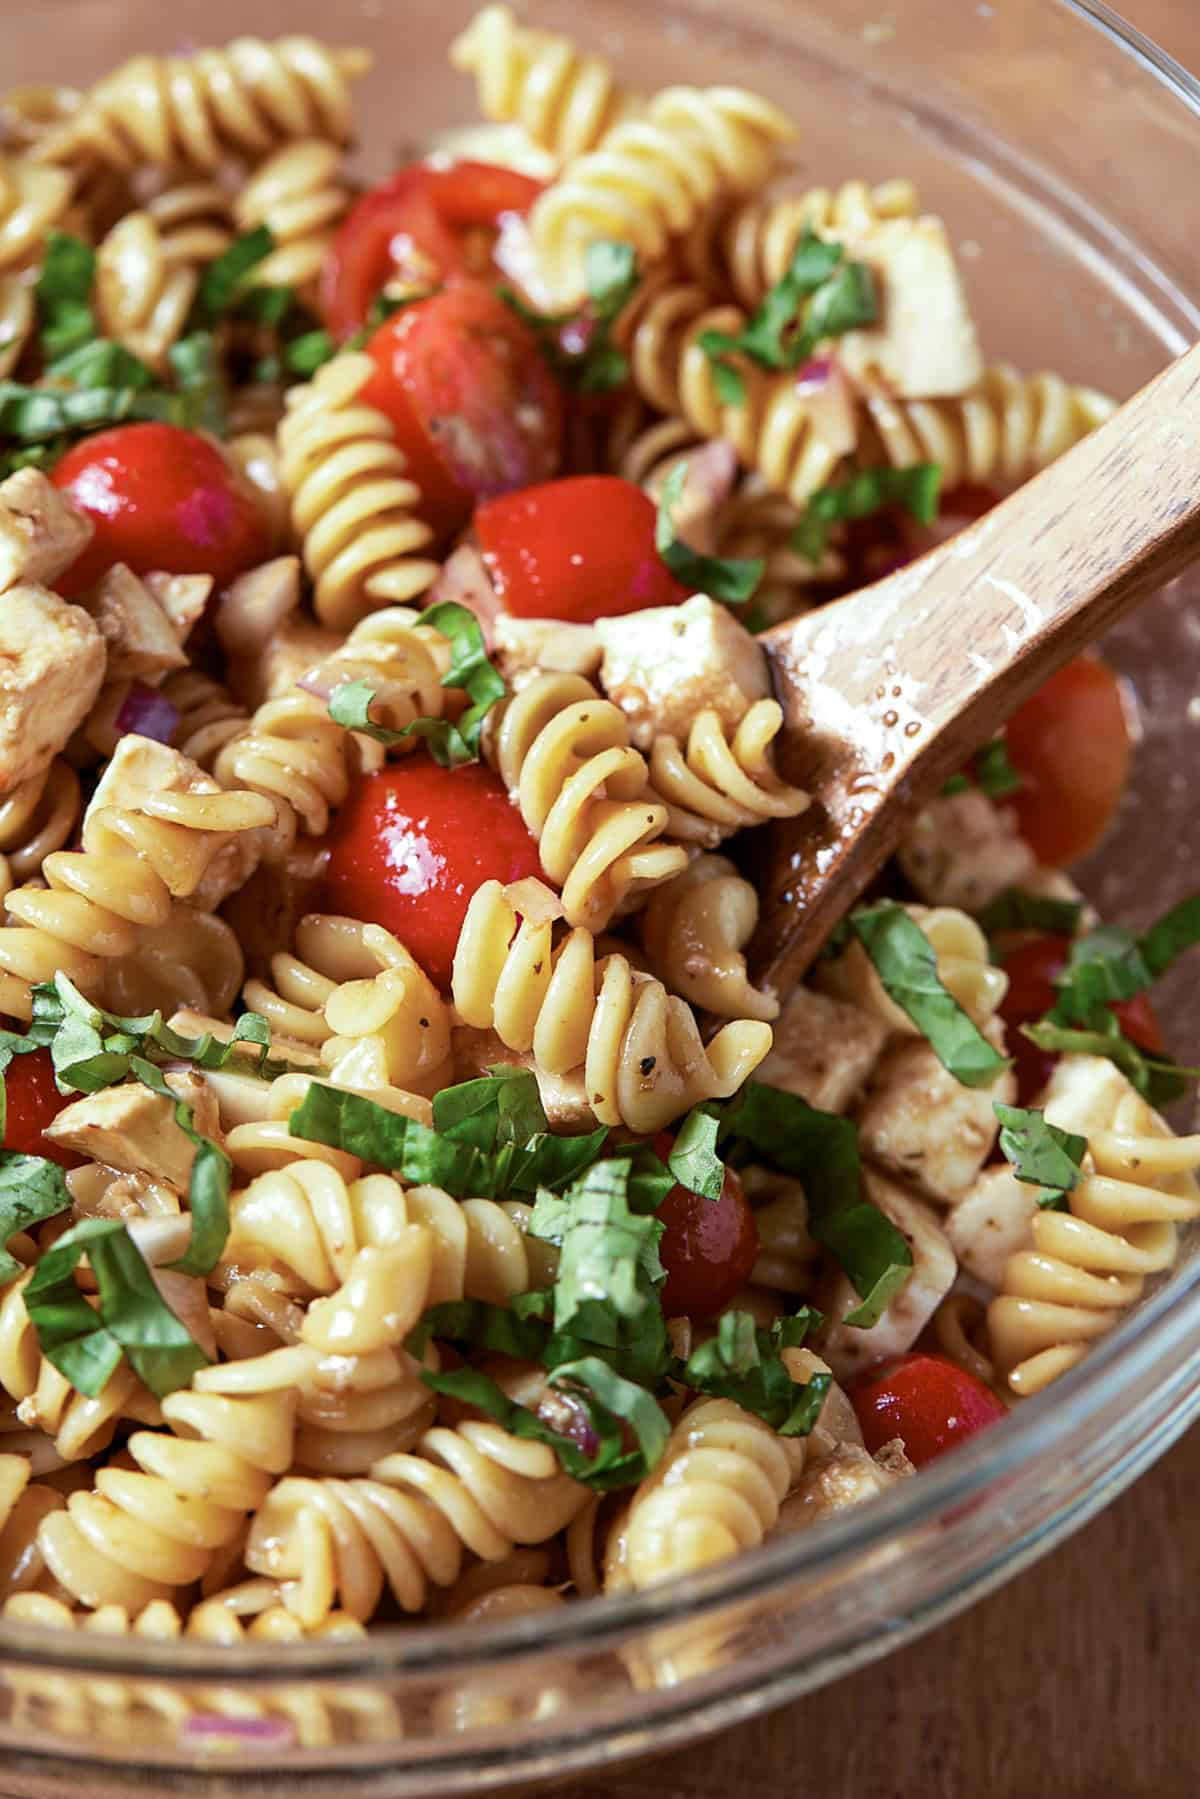 Glass bowl with pasta, basil, tomatoes and spoon.